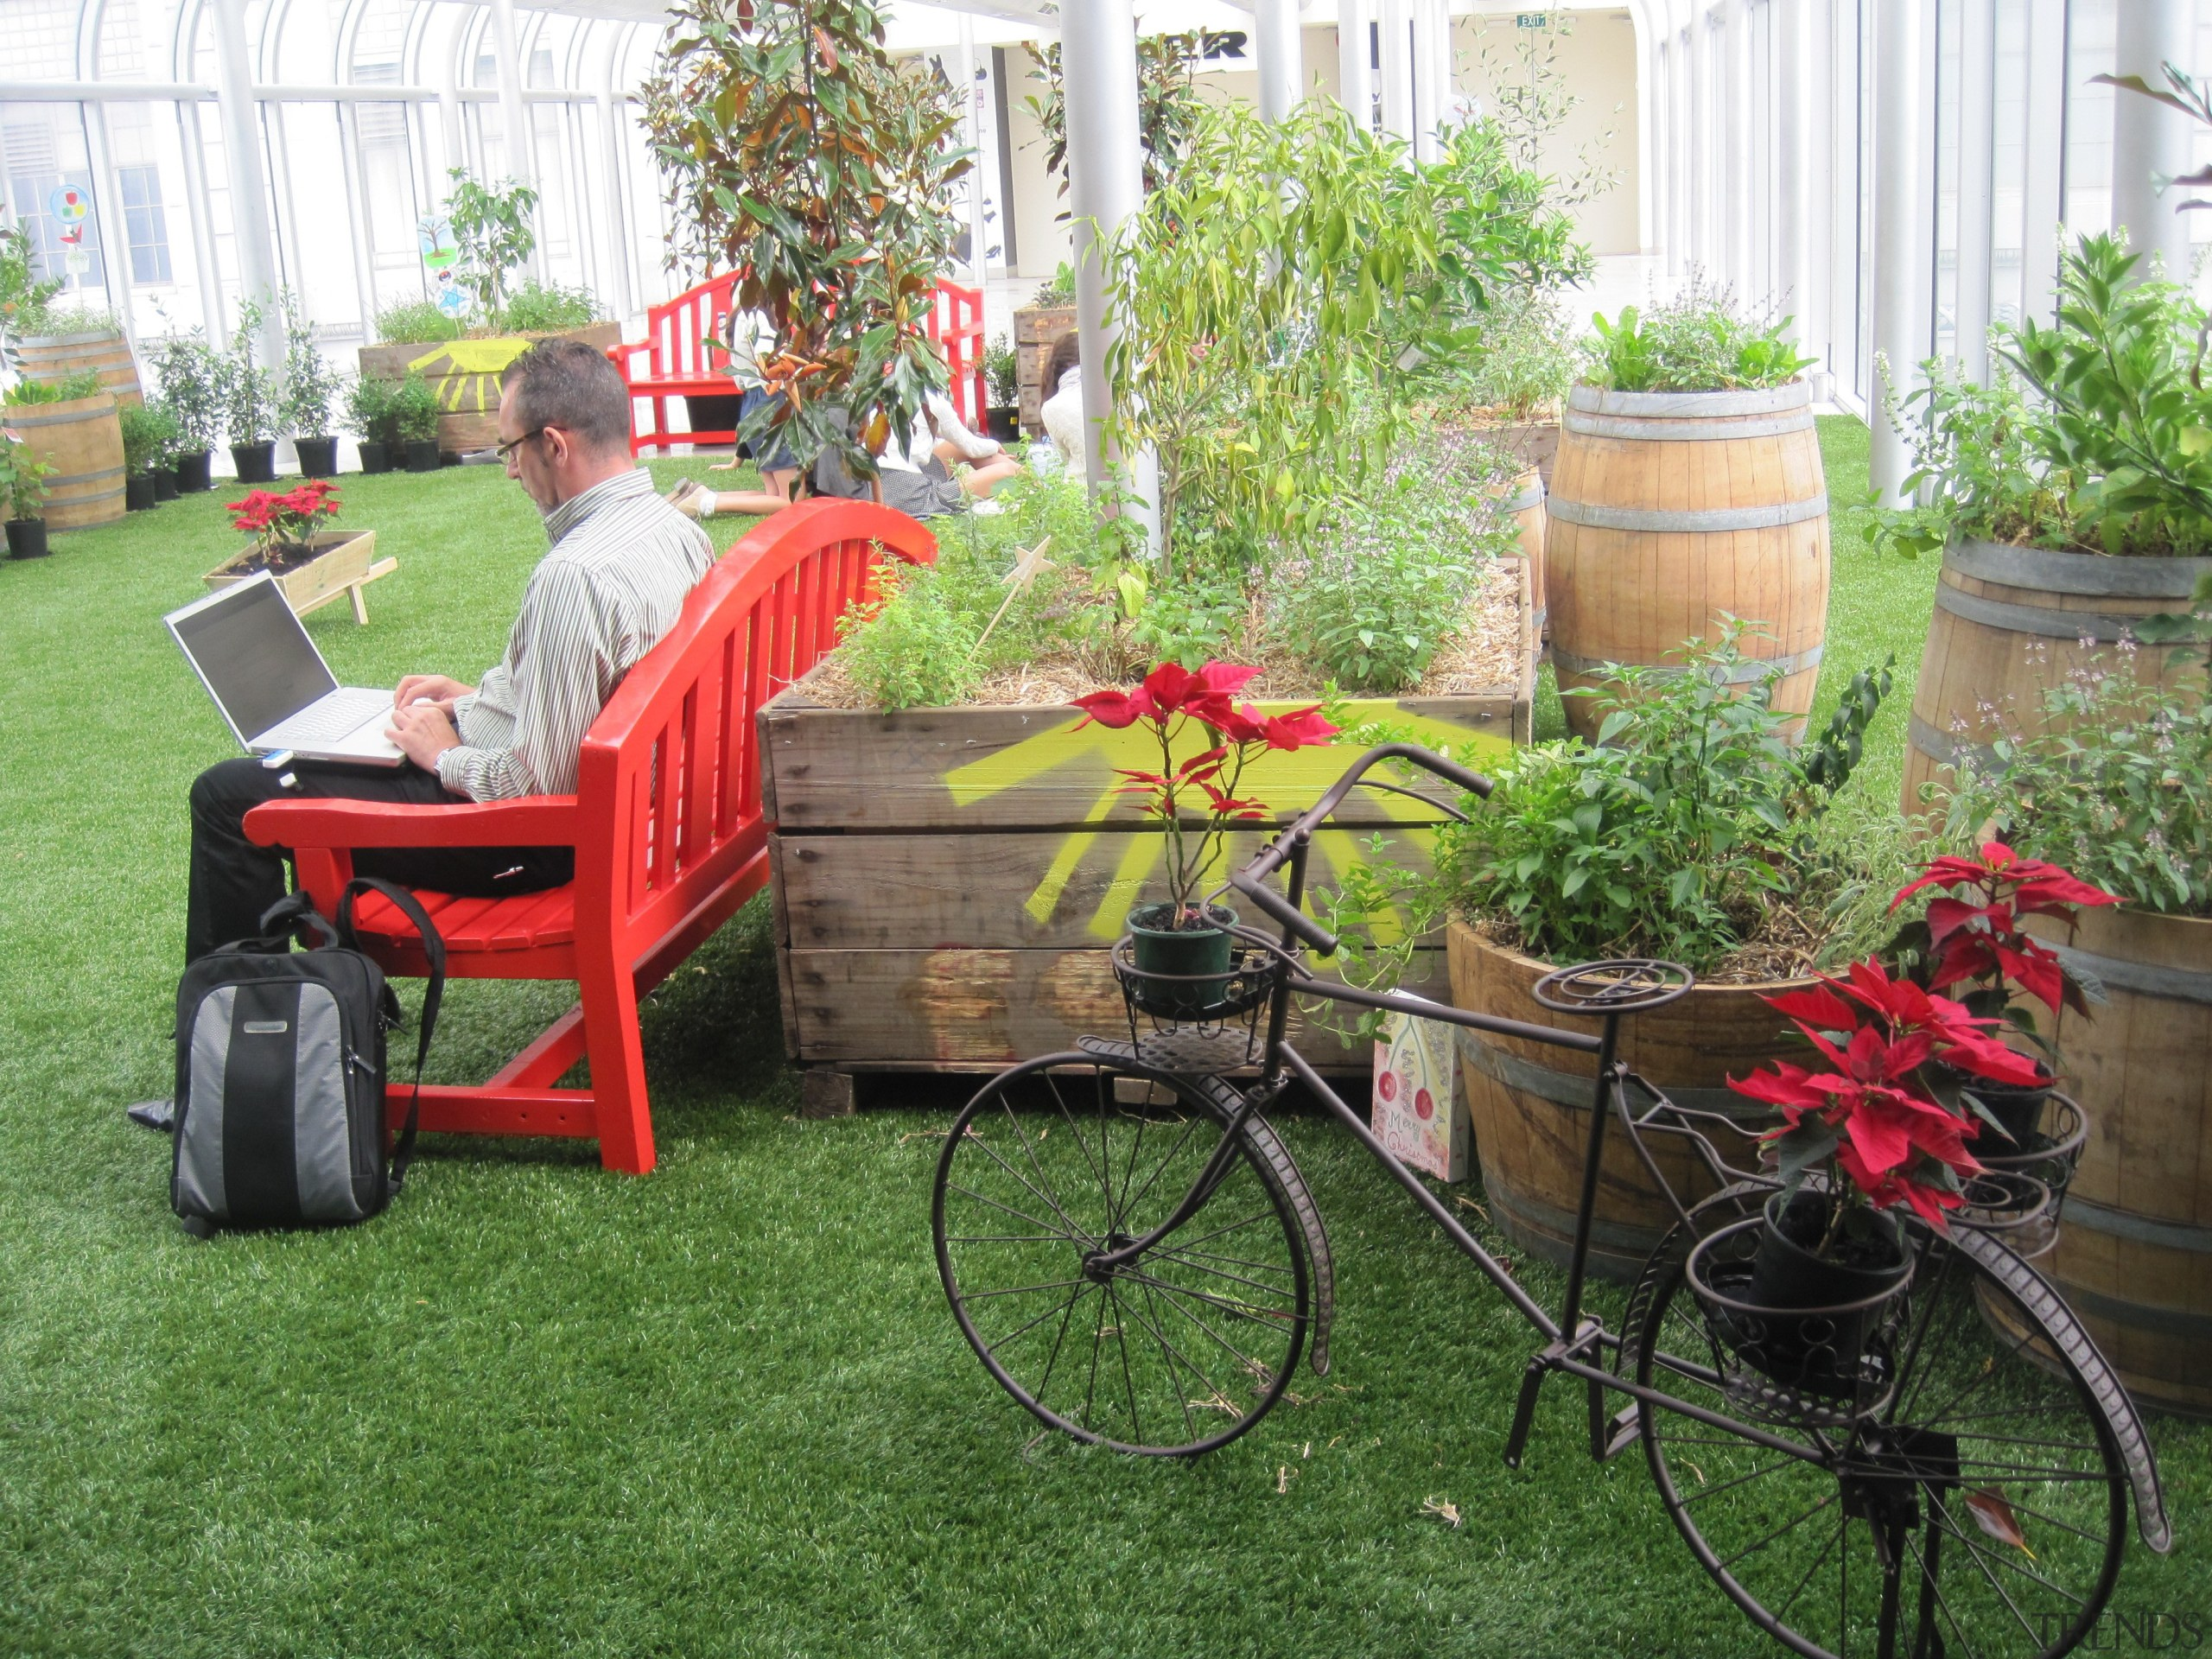 Commercial landscape - backyard | bicycle | bicycle backyard, bicycle, bicycle accessory, carriage, cart, flower, garden, grass, lawn, plant, product, tree, vehicle, yard, green